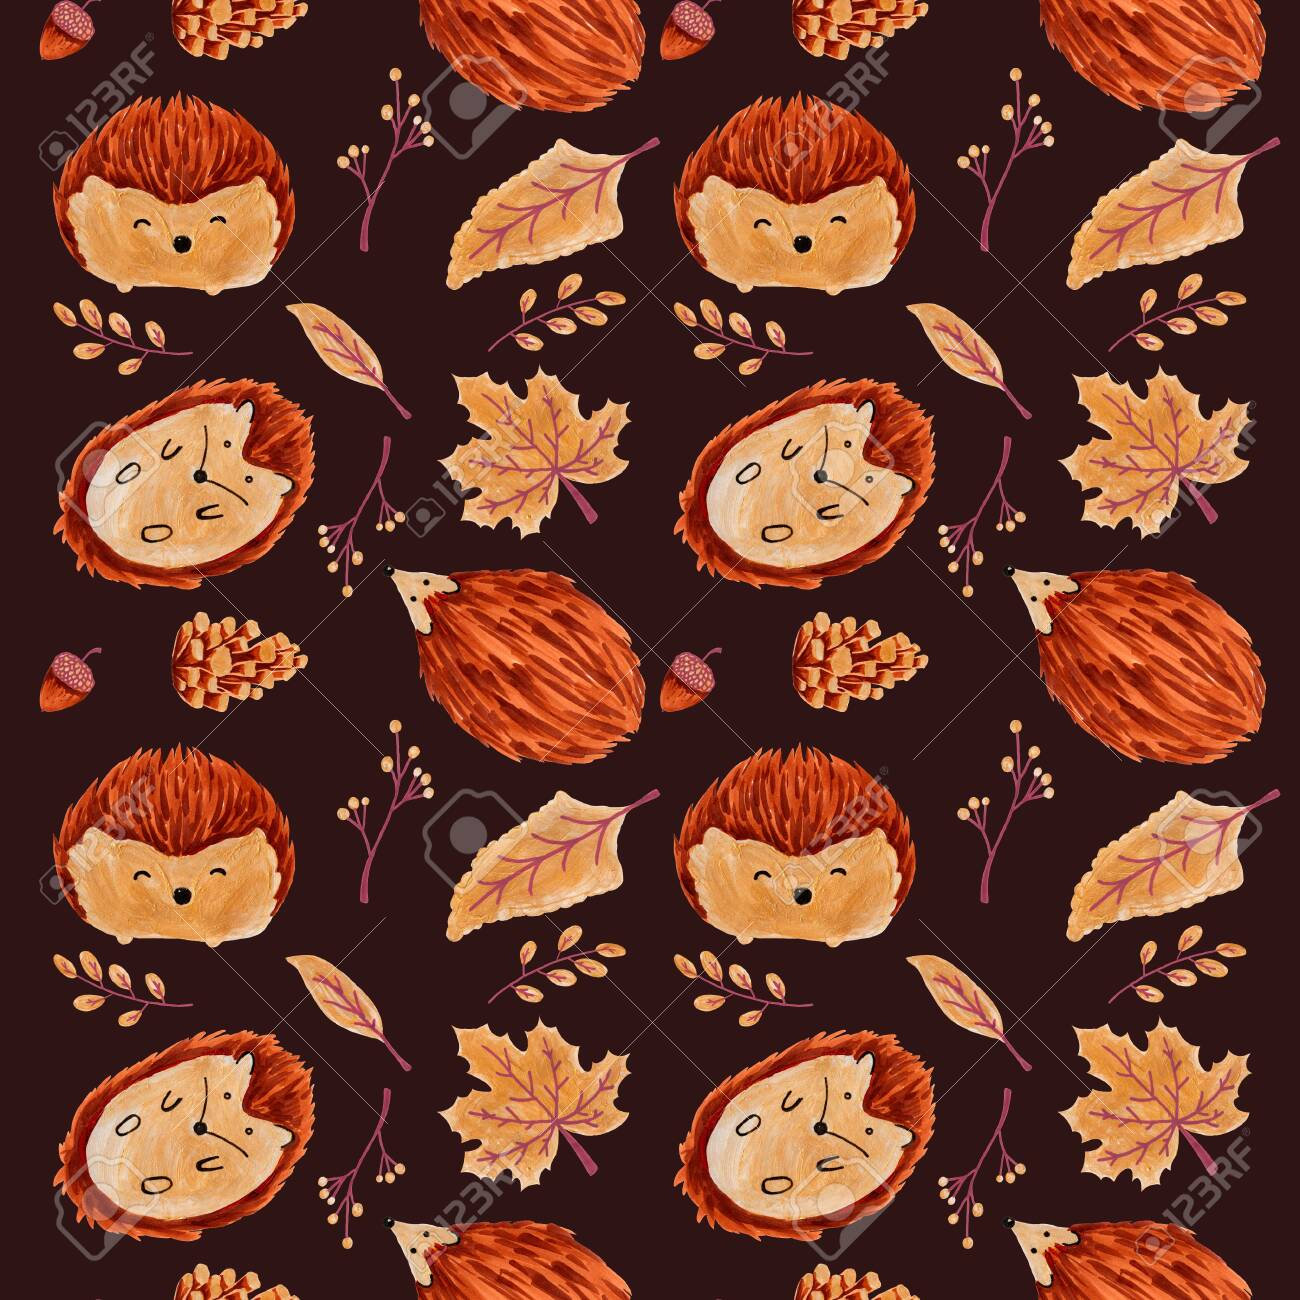 Seamless Autumn Pattern with Leaves and Hedgehog. - 127956741